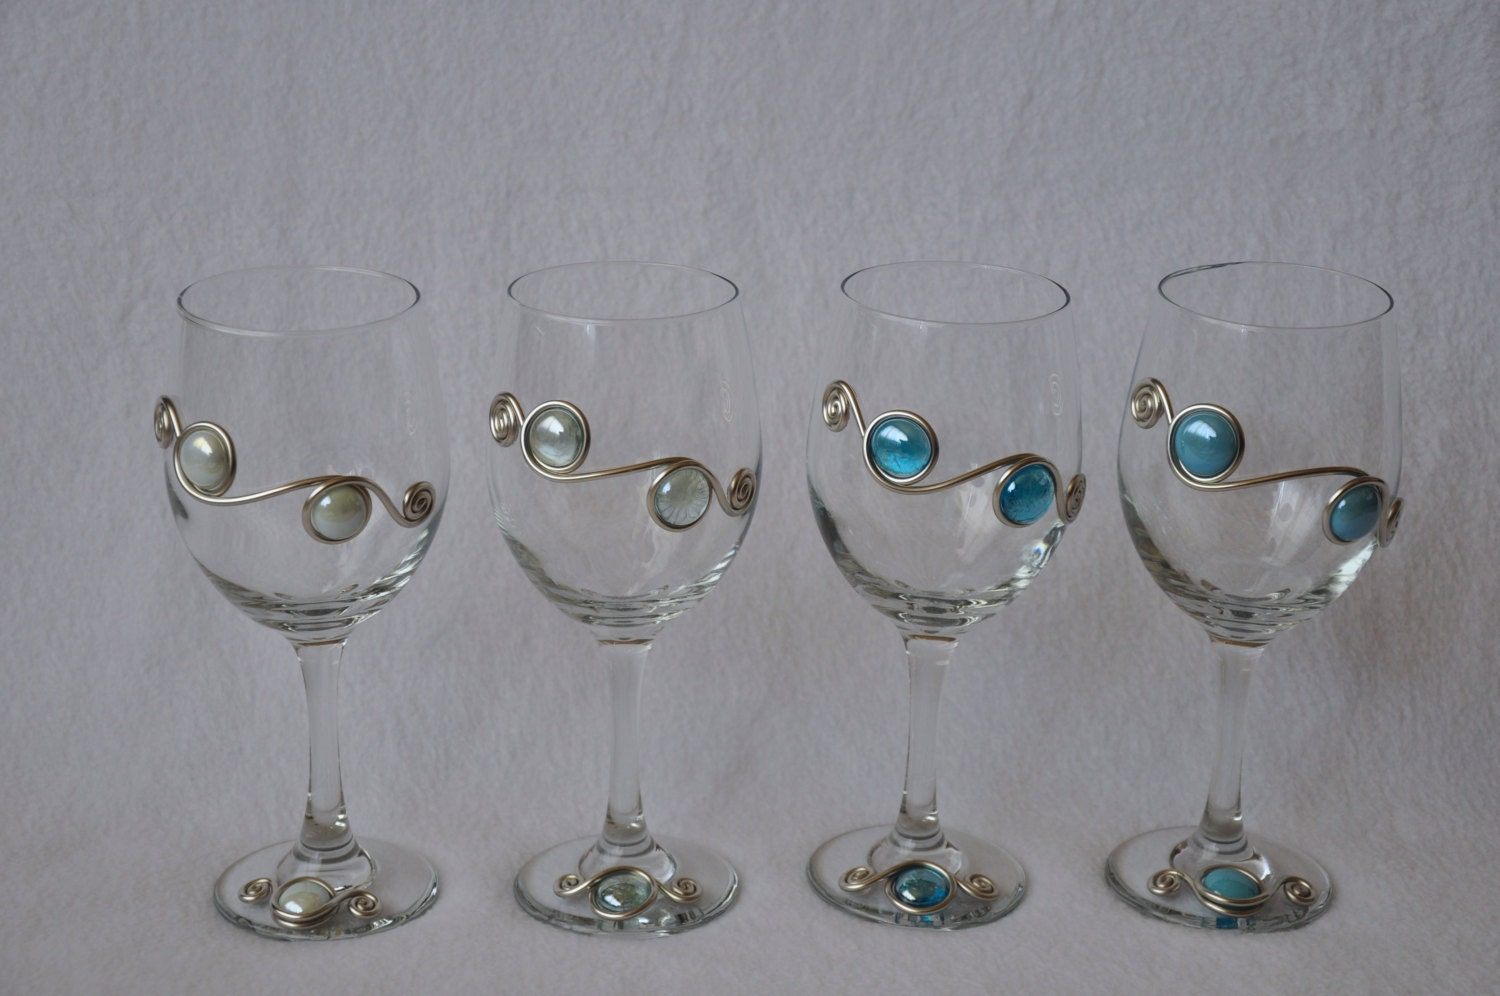 Decorative Wine Glasses Embellished With Glass By. Teen Boy Room Decor. Blue Home Decor Accessories. Hallway Wall Decor. Room Divider Ideas Ikea. Decorative Exterior House Trim. Beautiful Living Rooms. Asian Home Decor. Modern Living Room Designs